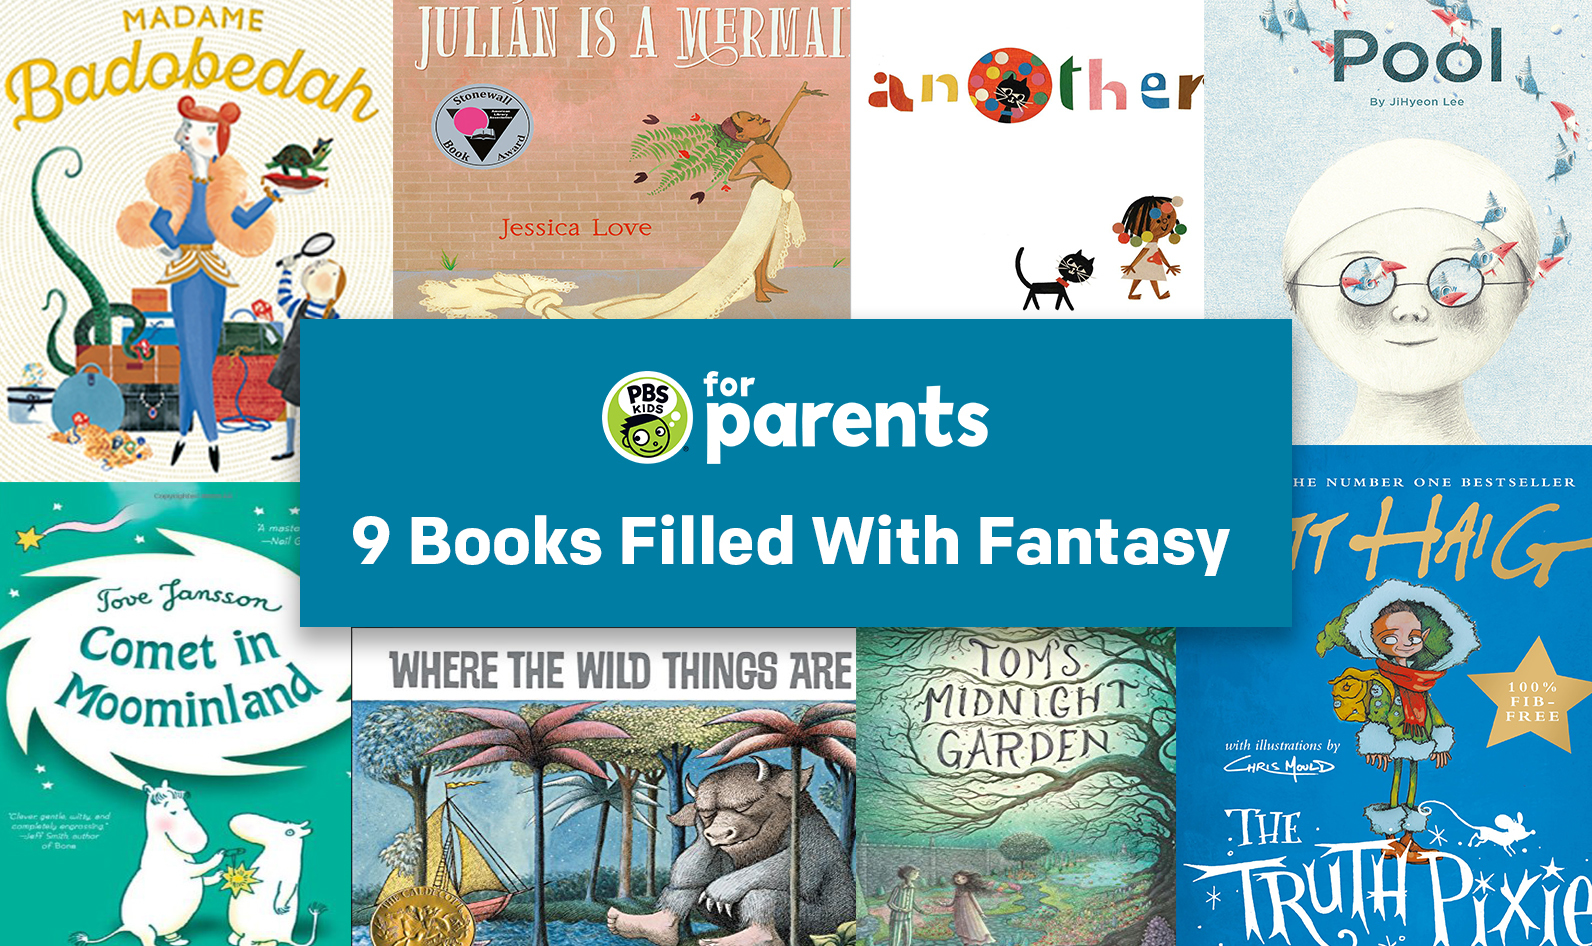 9 Children's Books Filled With Fantasy   Parenting Tips & Advice   PBS KIDS for Parents